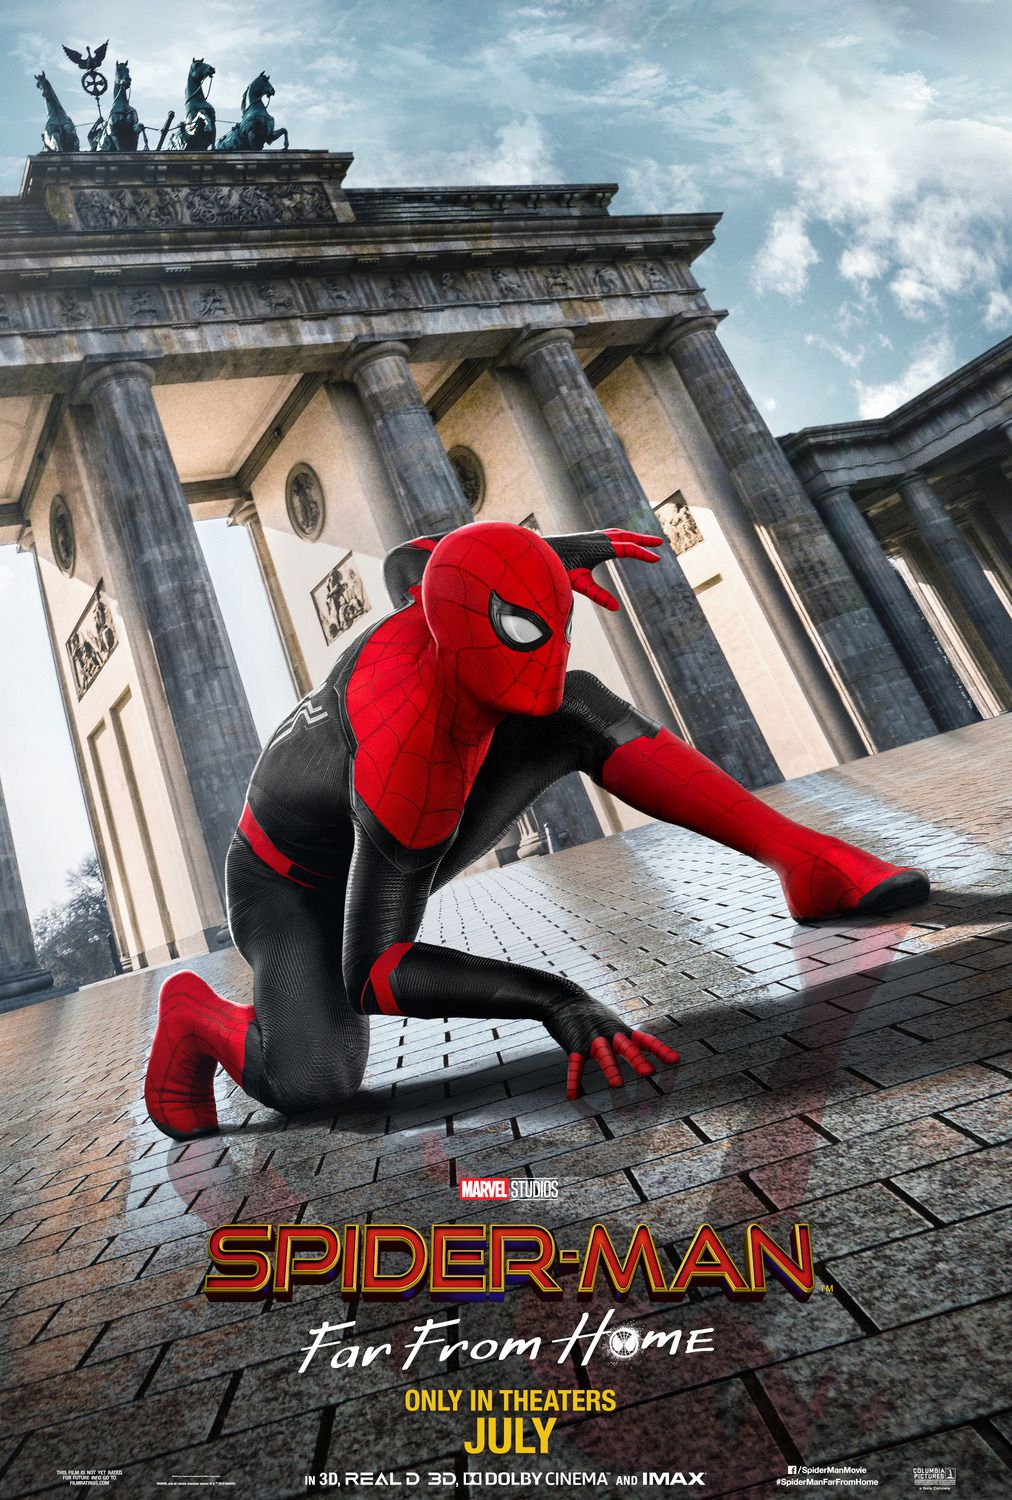 Spiderman far from Home (2019) poster Berlin